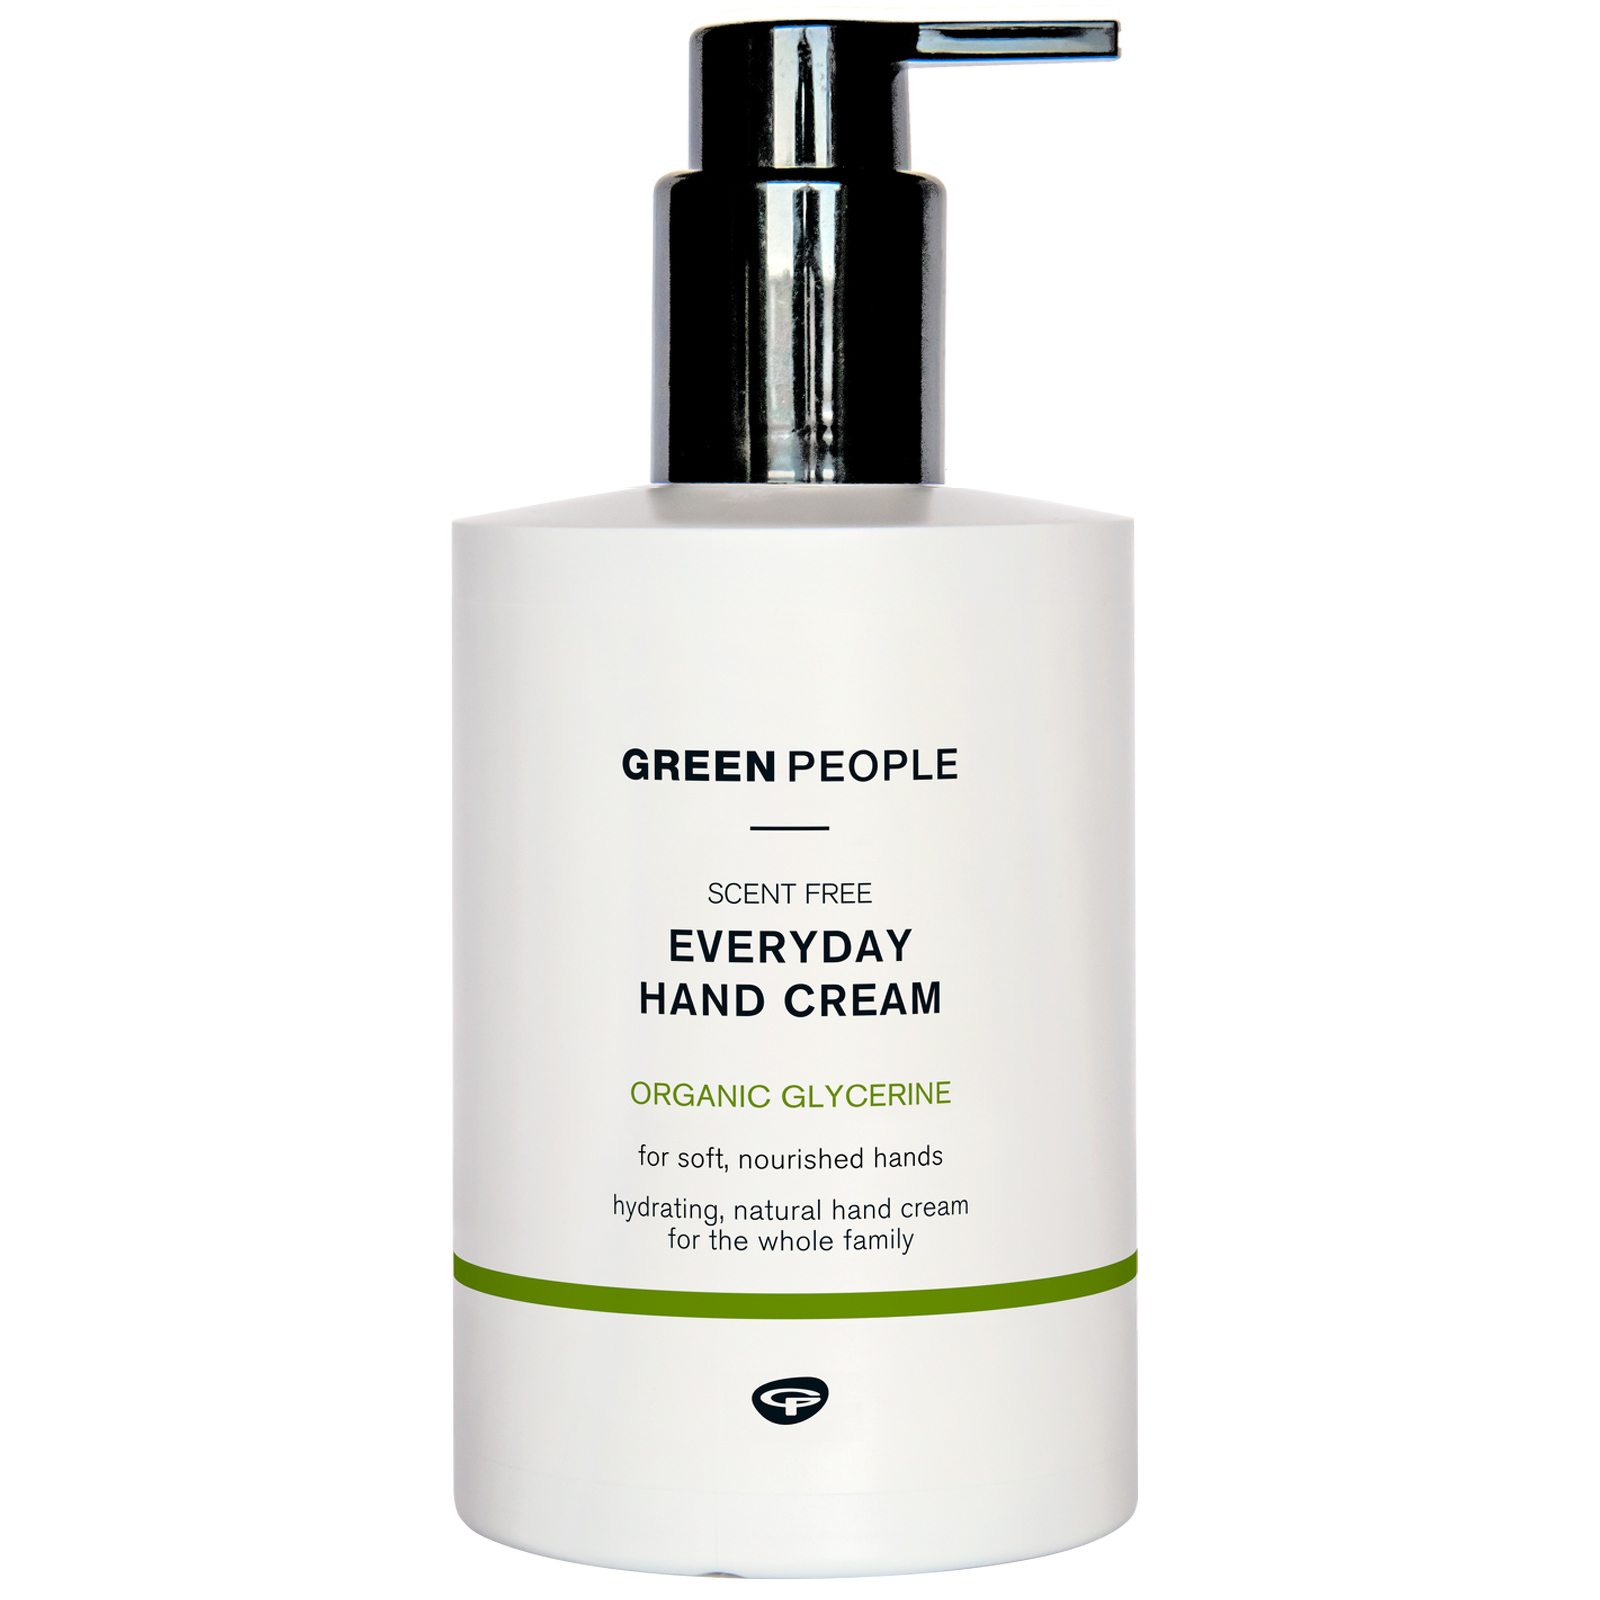 Green People Body Scent Free Everyday Hand Cream 300ml